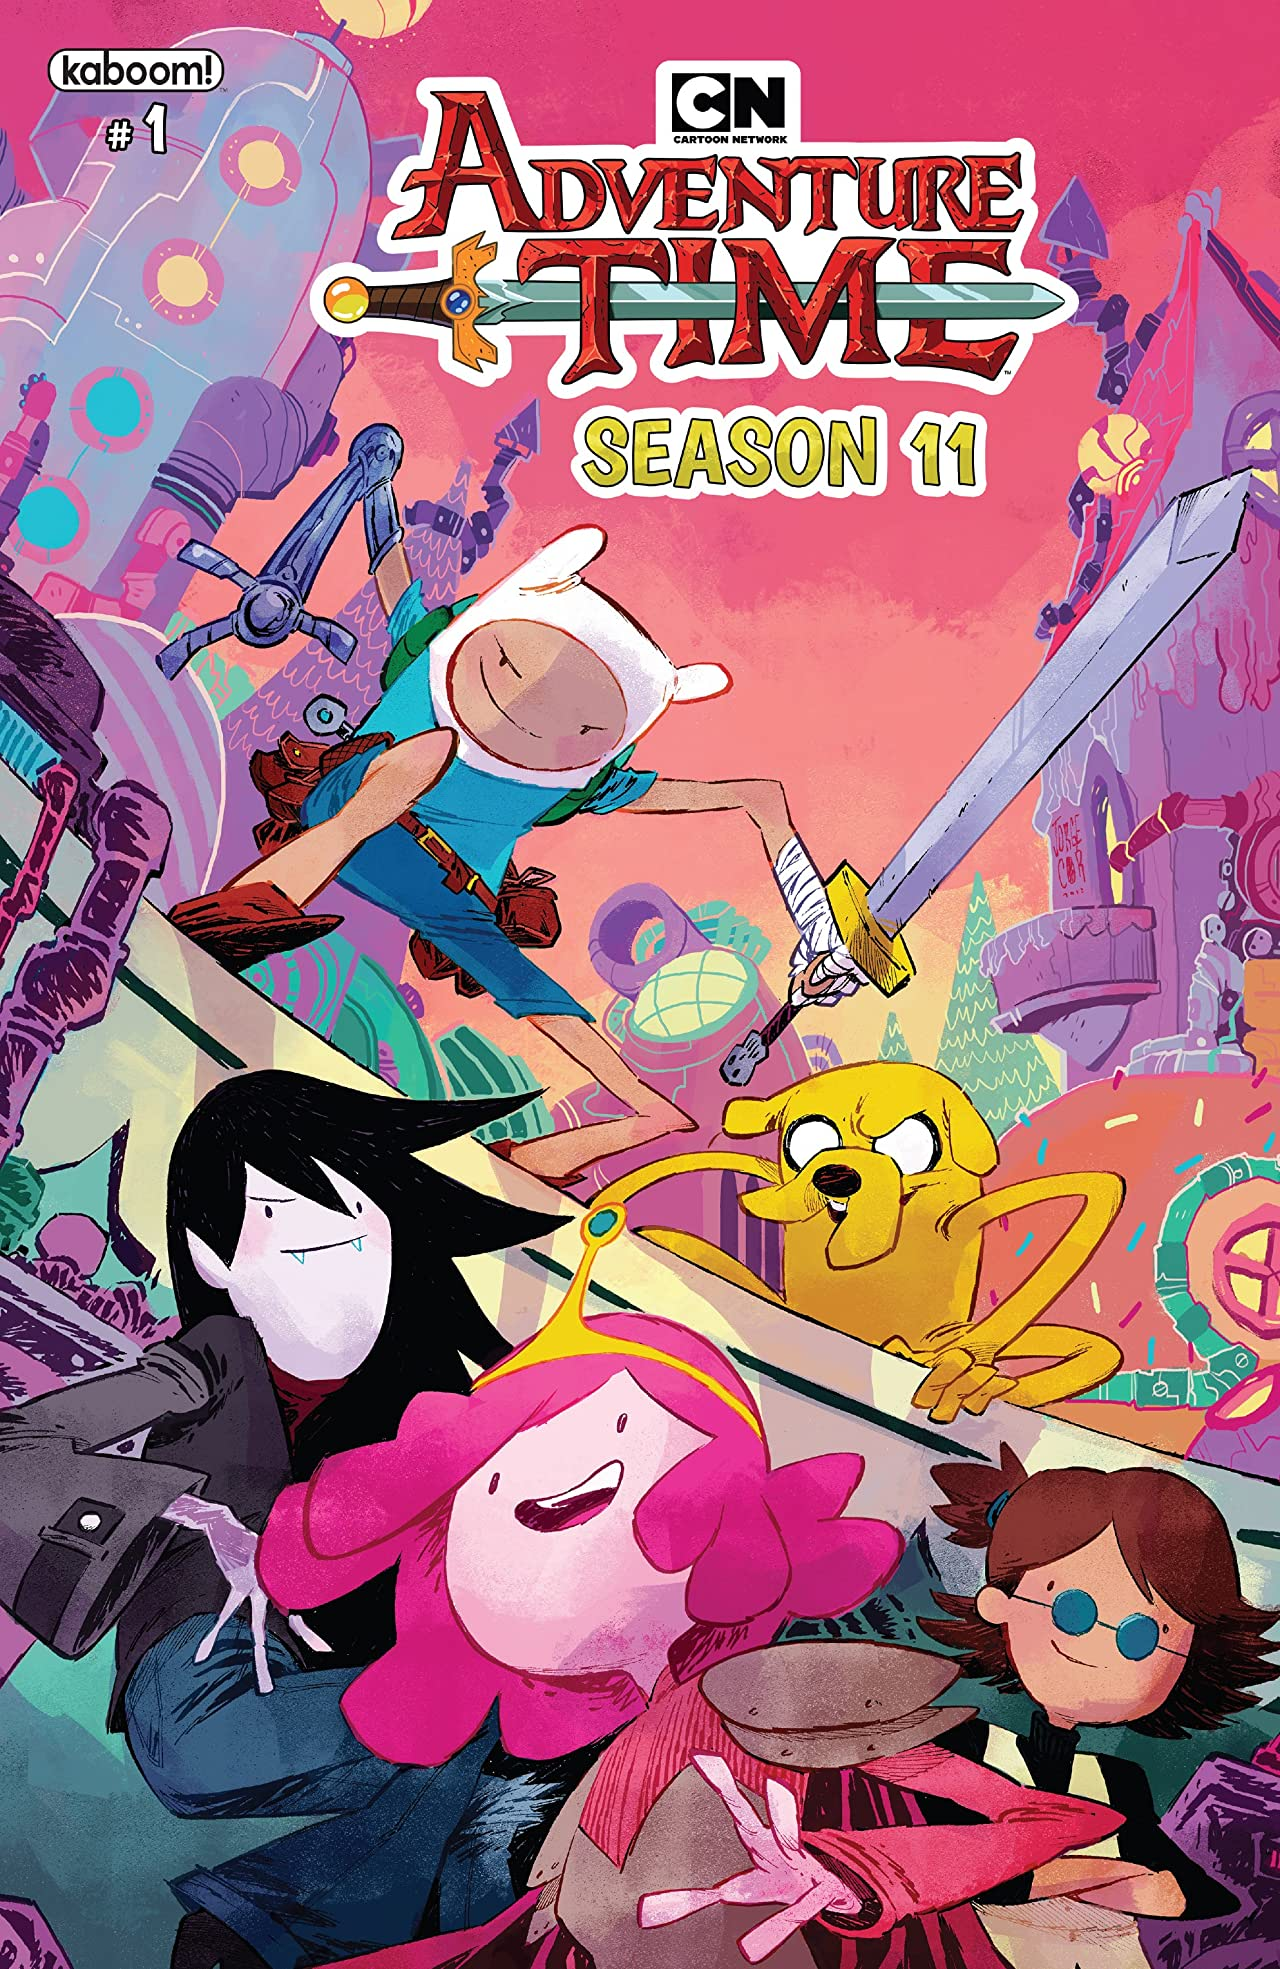 Adventure Time Season 11 #1